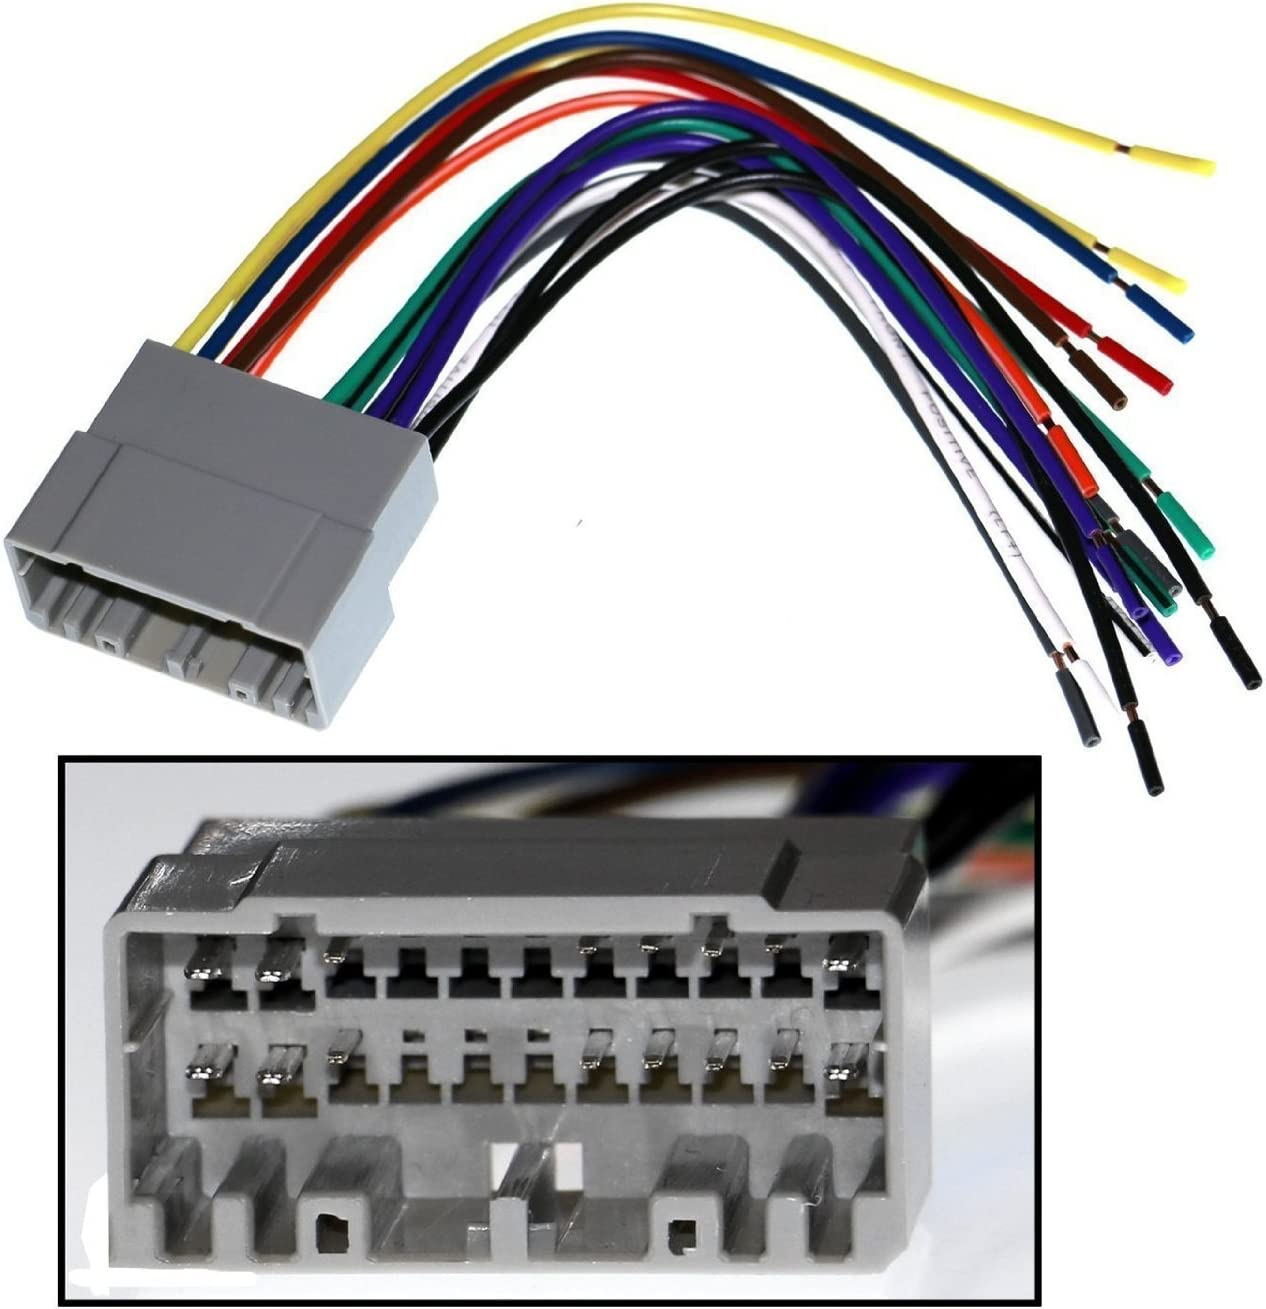 Amazon.com: American Terminal AT99-6516B Fits Compatible with 2005-07 Chrysler  300 Double DIN Stereo Harness Radio Dash KitAmazon.com